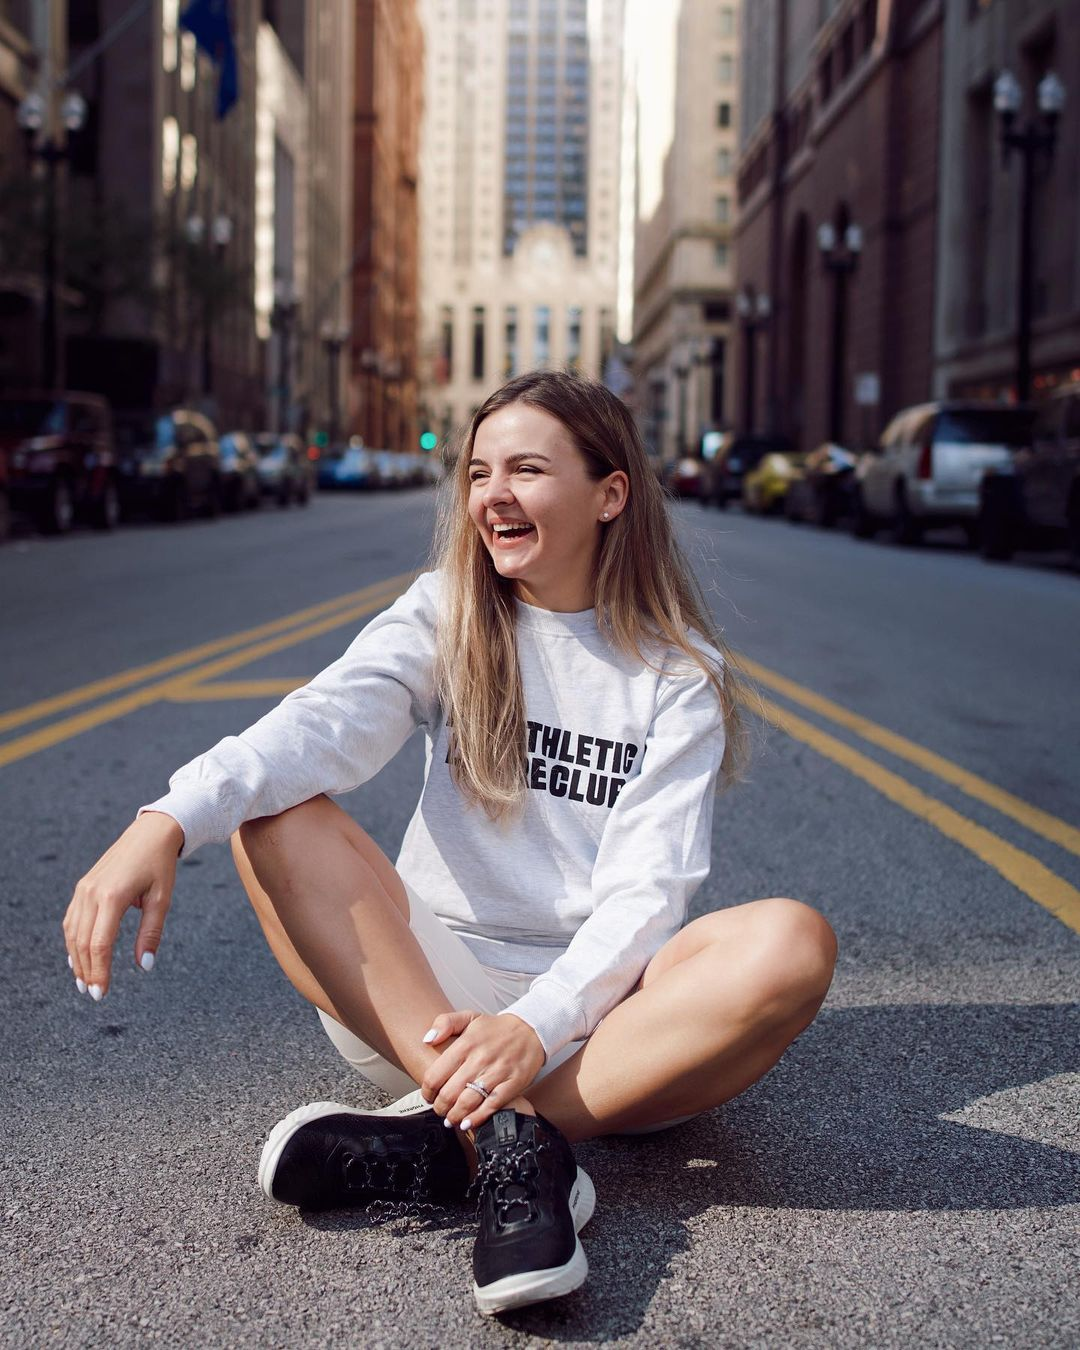 Olia sitting in the middle of the street surrounded by tall buildings